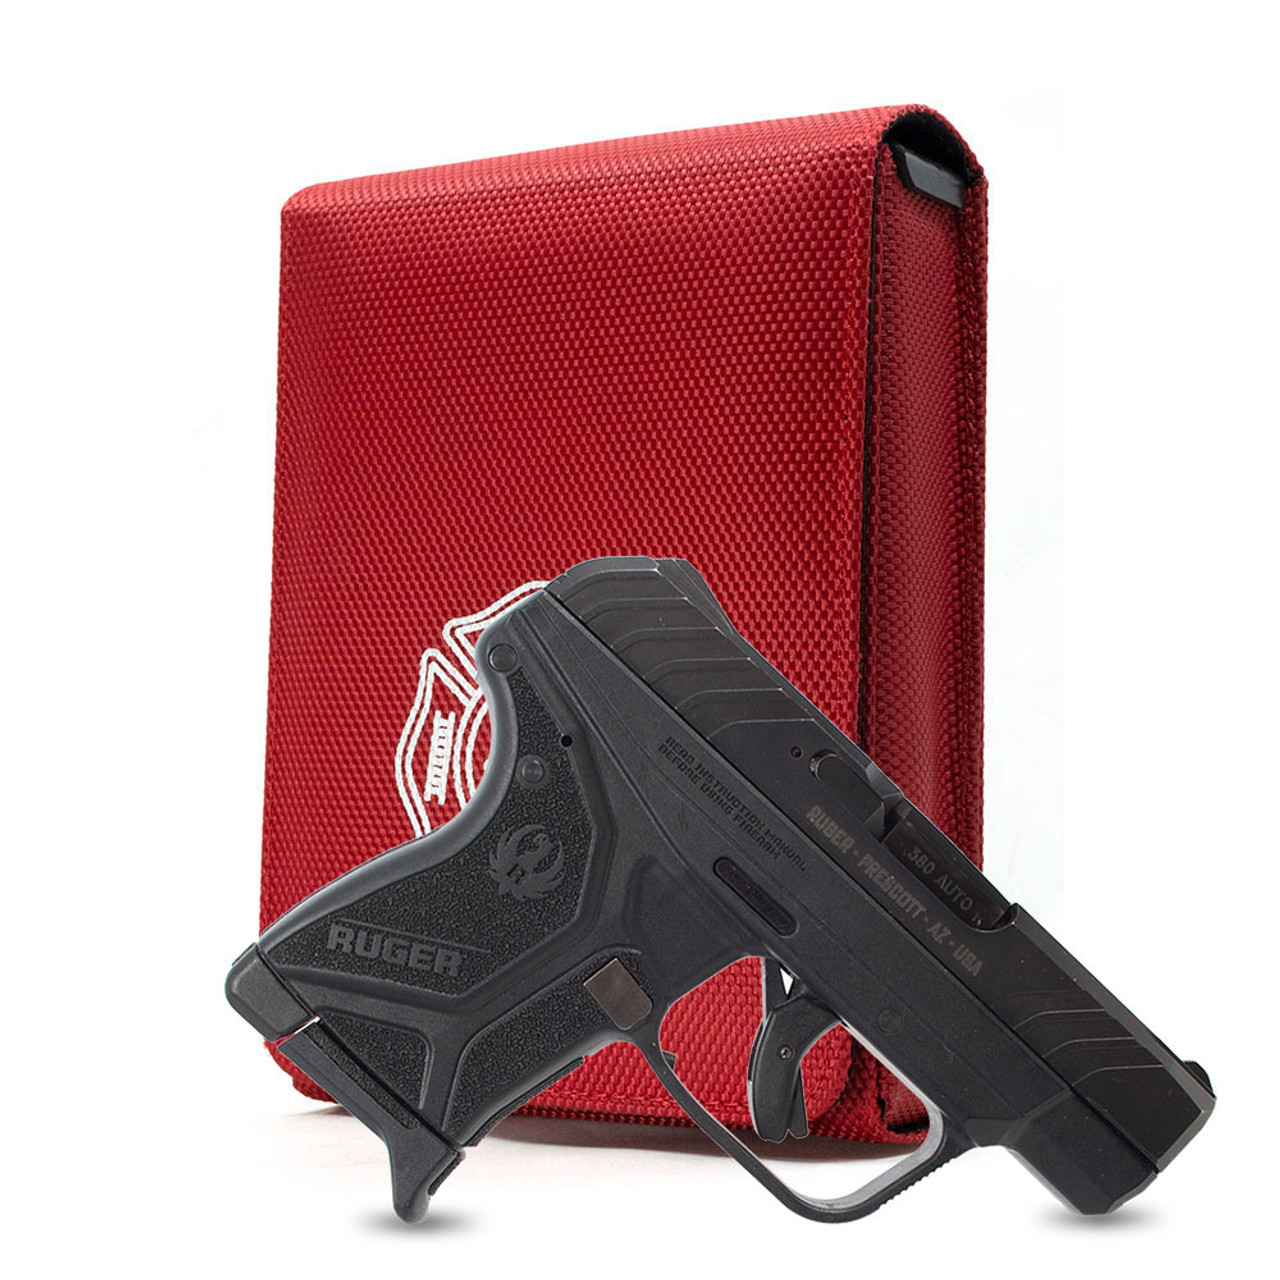 Ruger LCP II Red Covert Series Holster